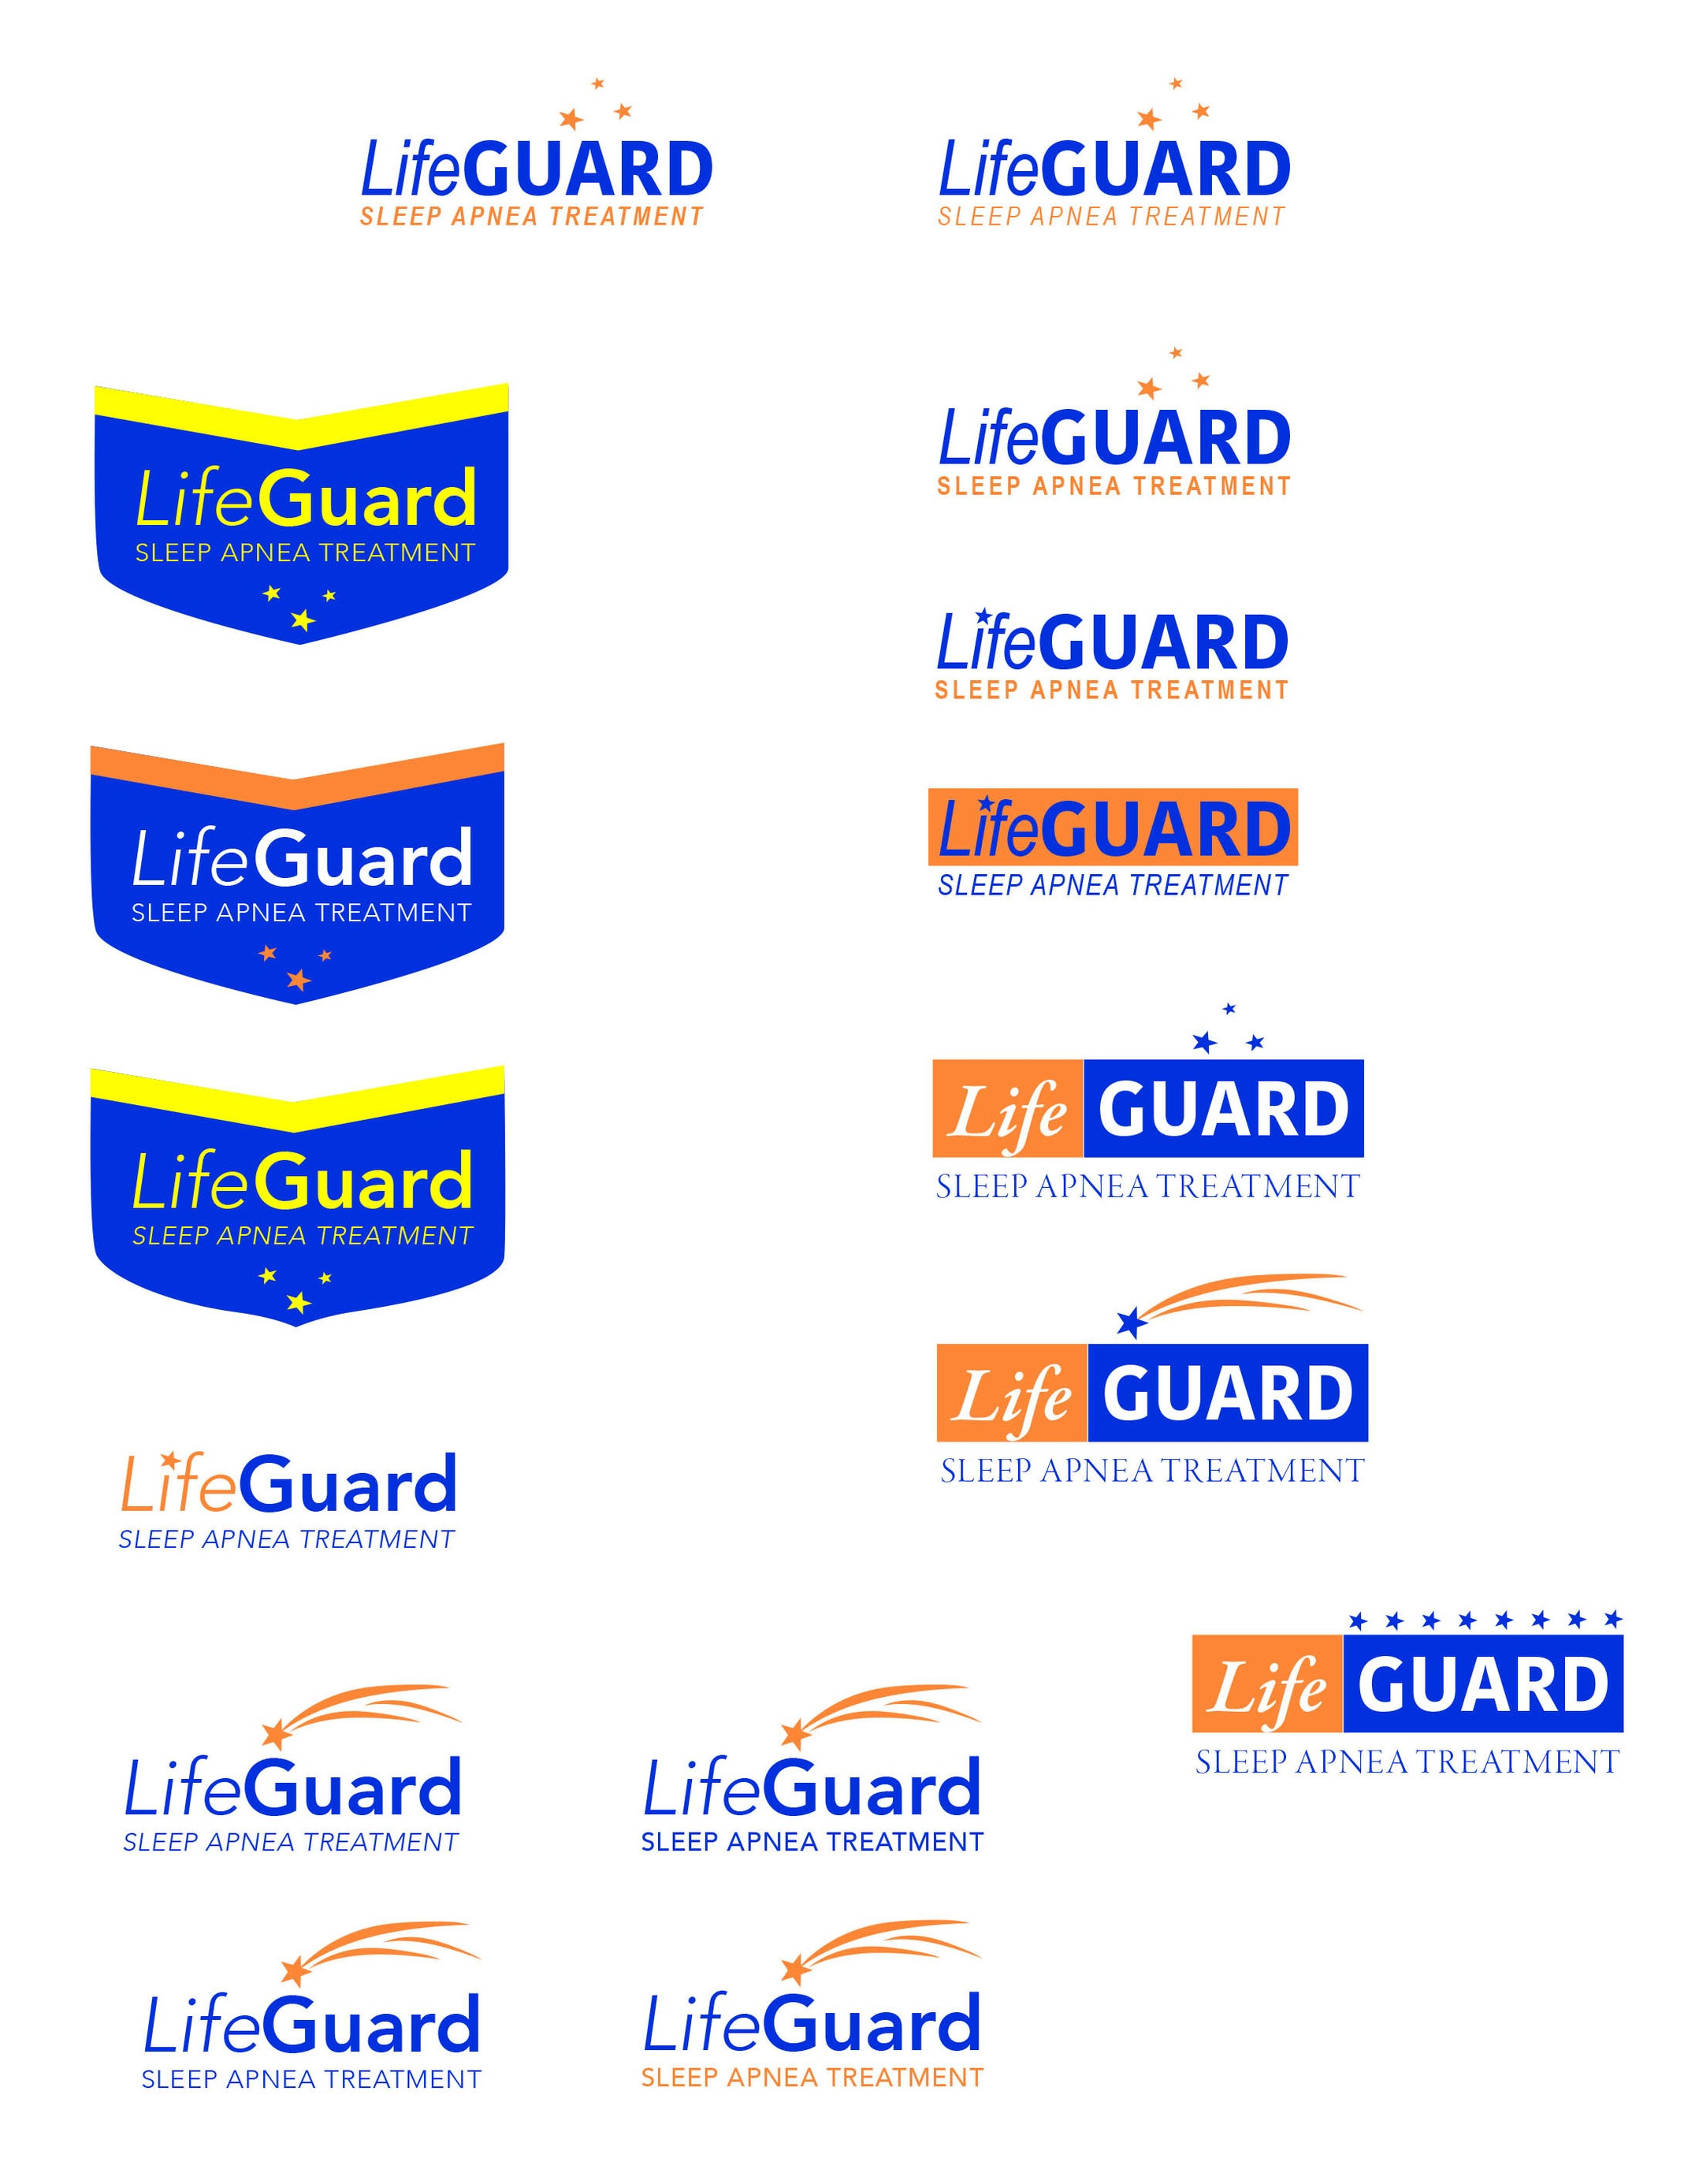 LifeGuard+logo2-2.jpg